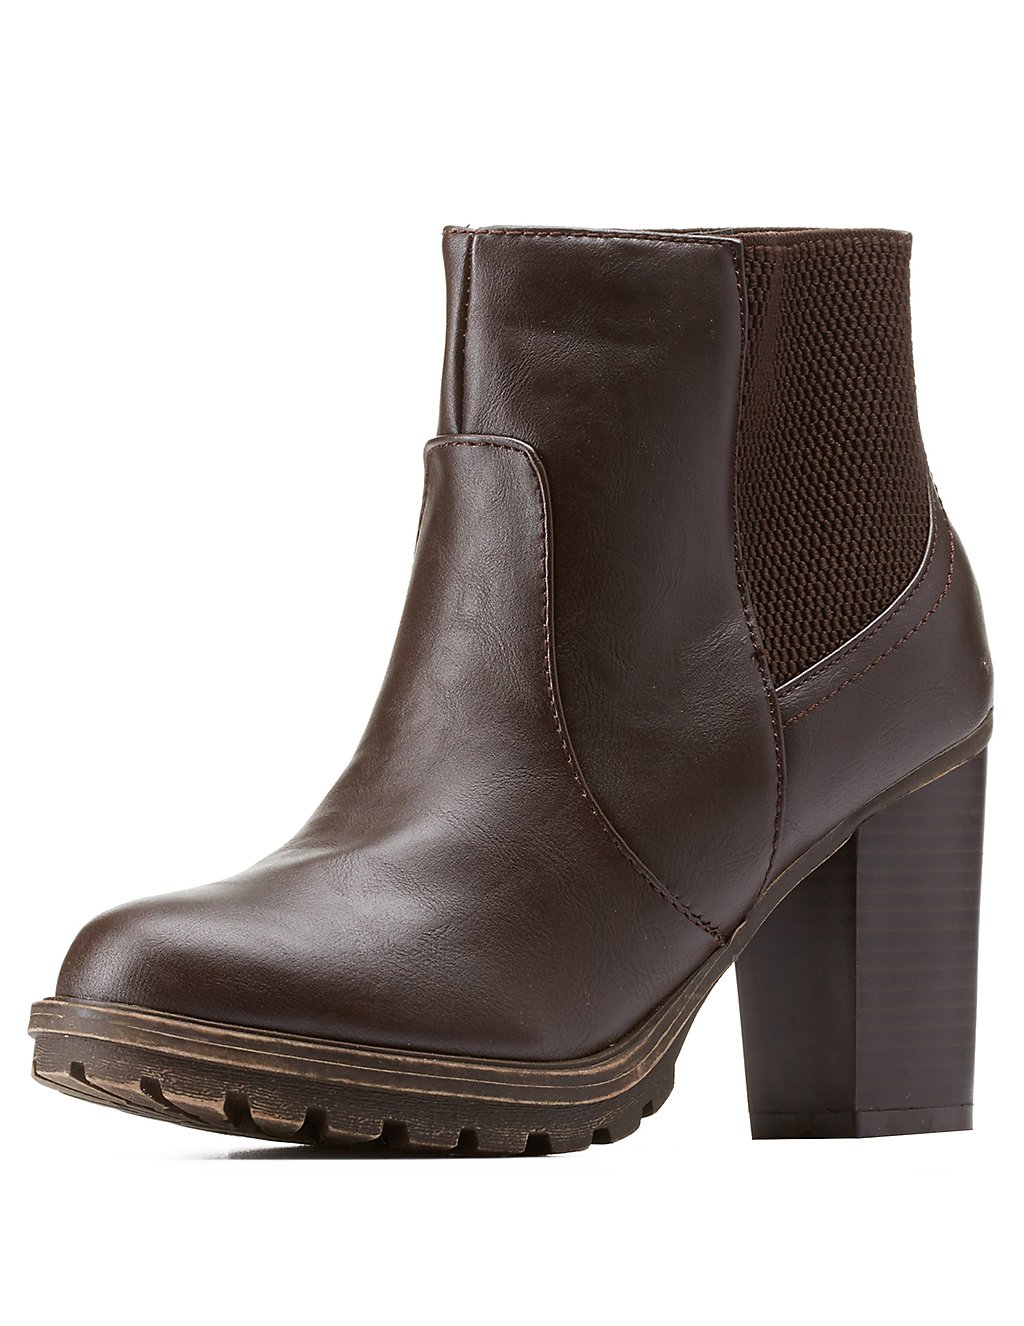 Bamboo Lug Sole Chunky Heel Chelsea Boots | Charlotte Russe